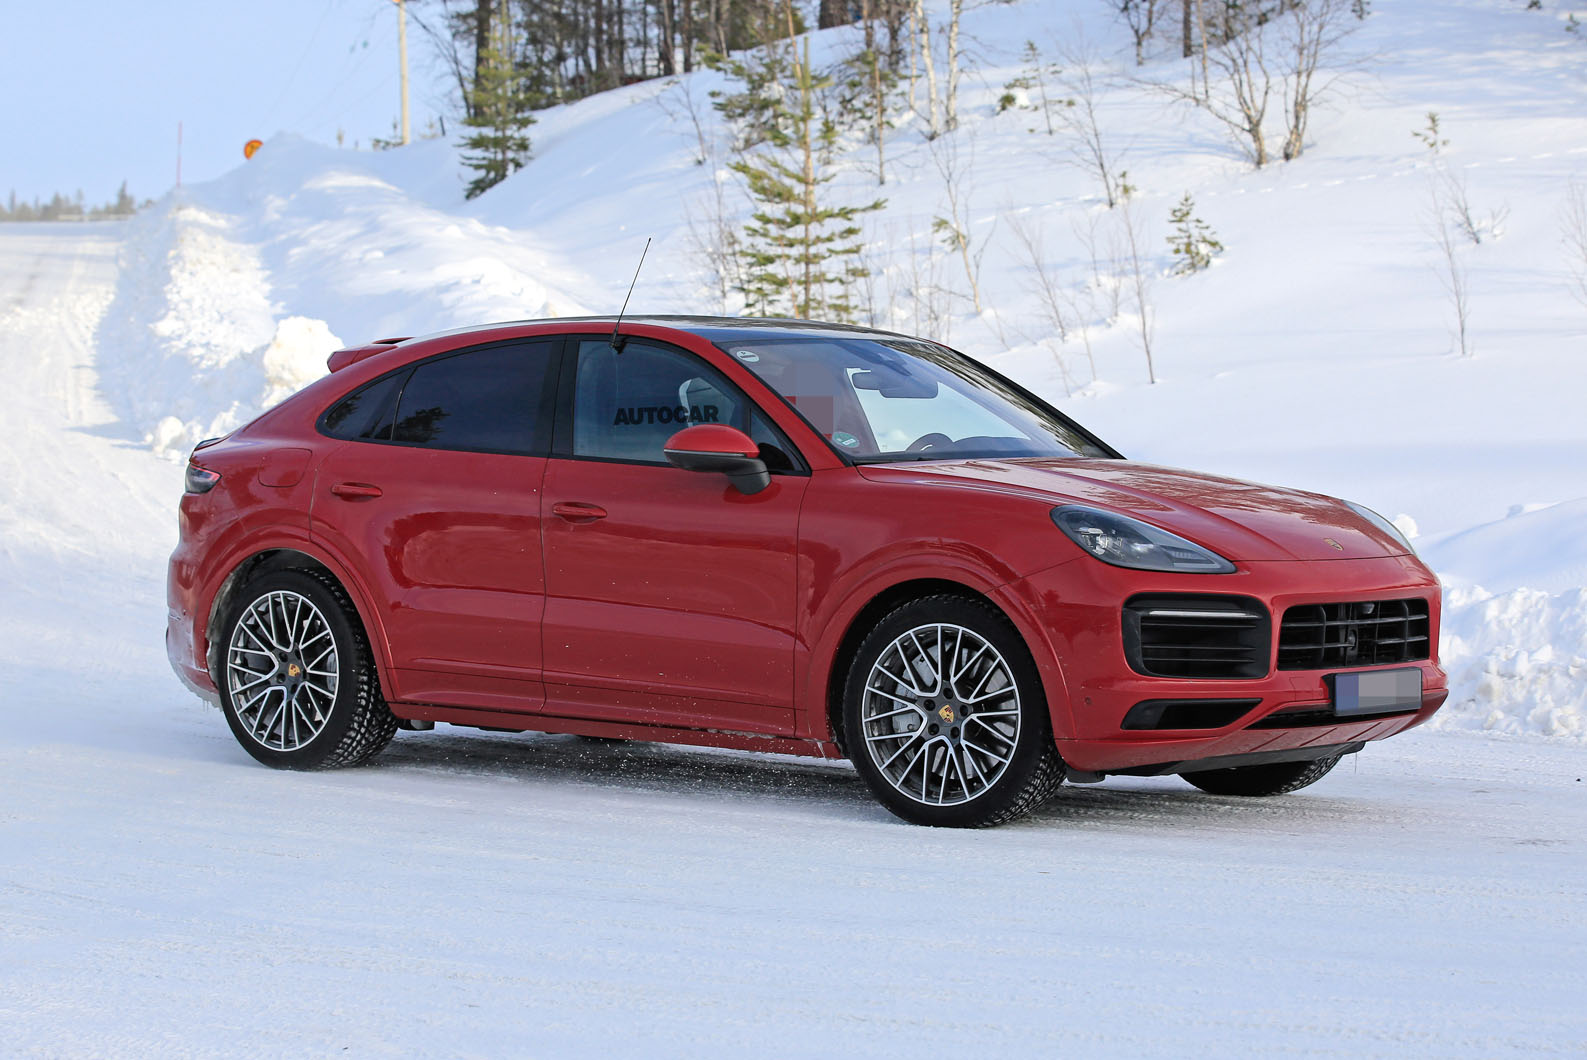 New Porsche Cayenne Coupe Gts Previewed In Spy Shots Autocar